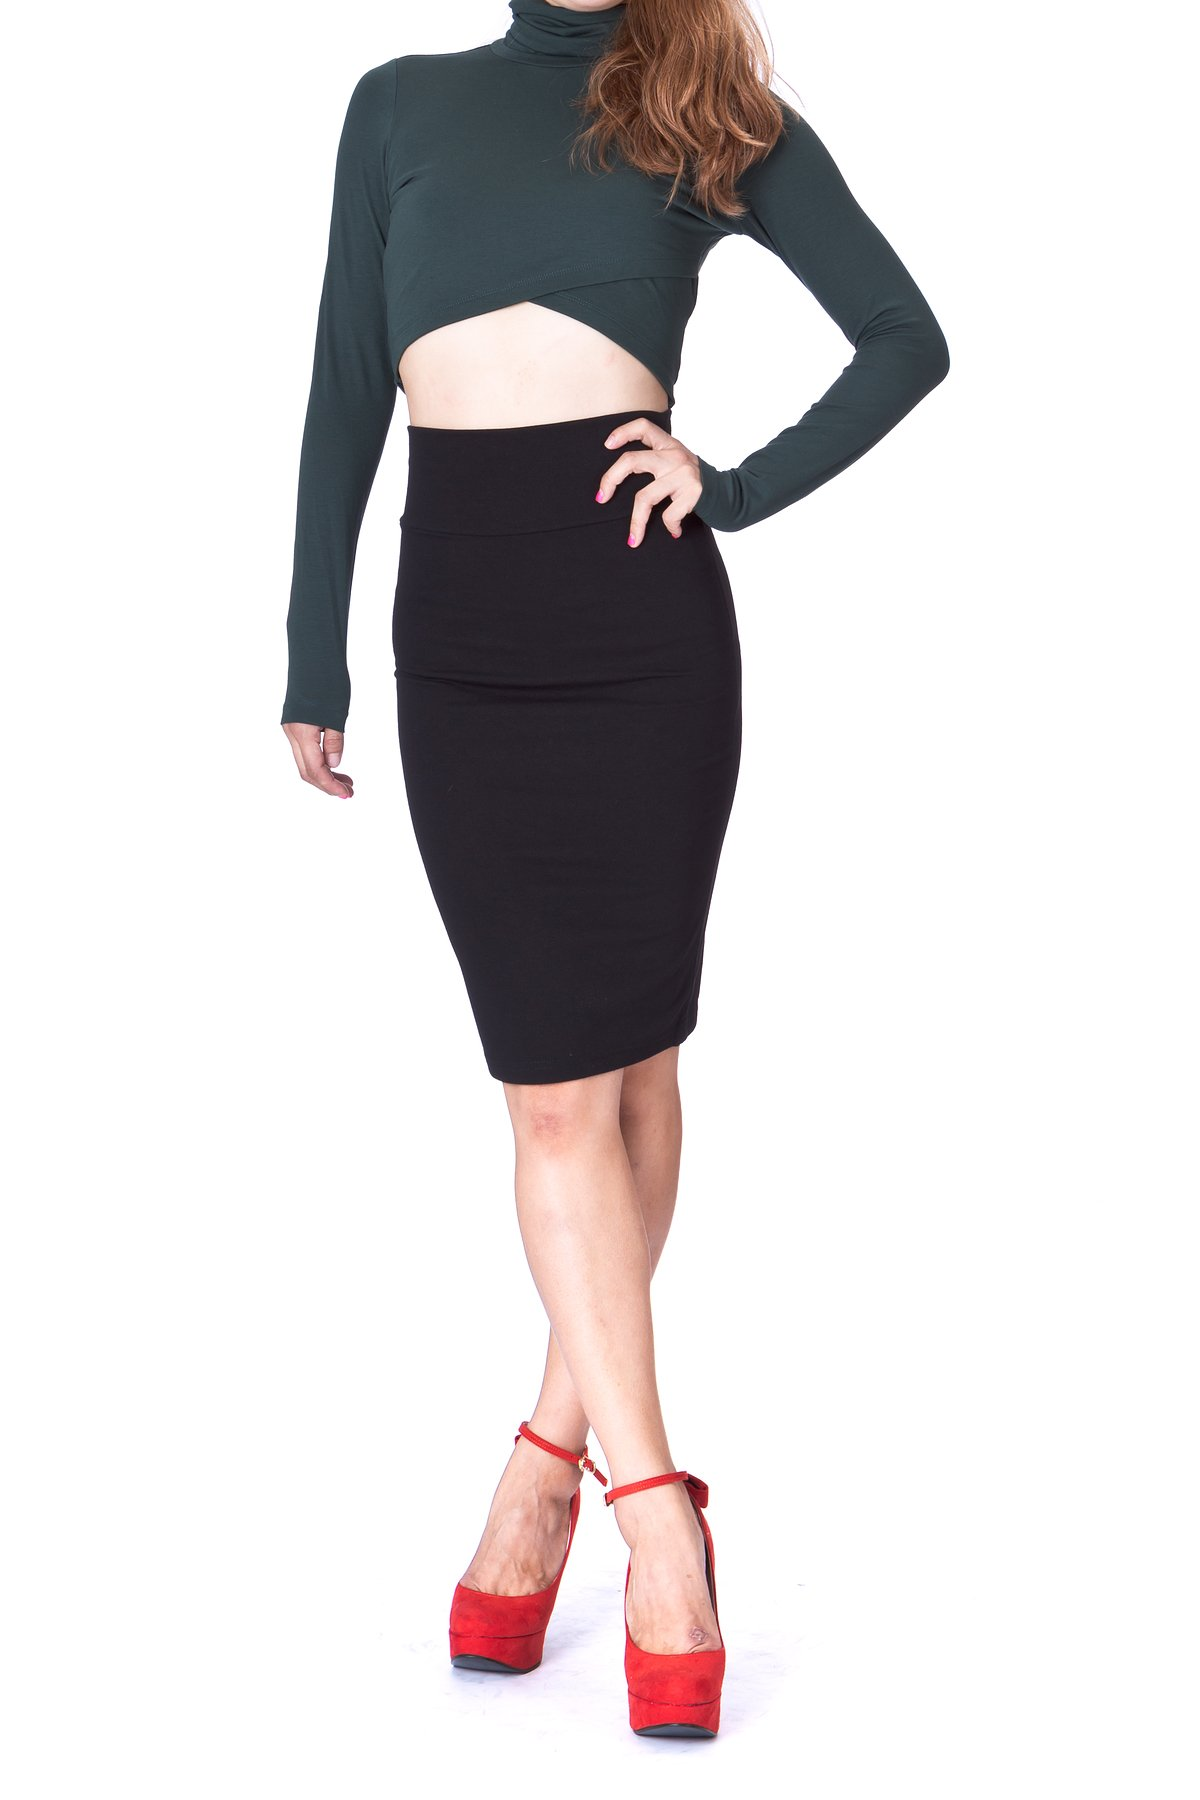 Every Occasion Stretch Pull on Wide High Waist Bodycon Pencil Knee Length Midi Skirt Black 1 1